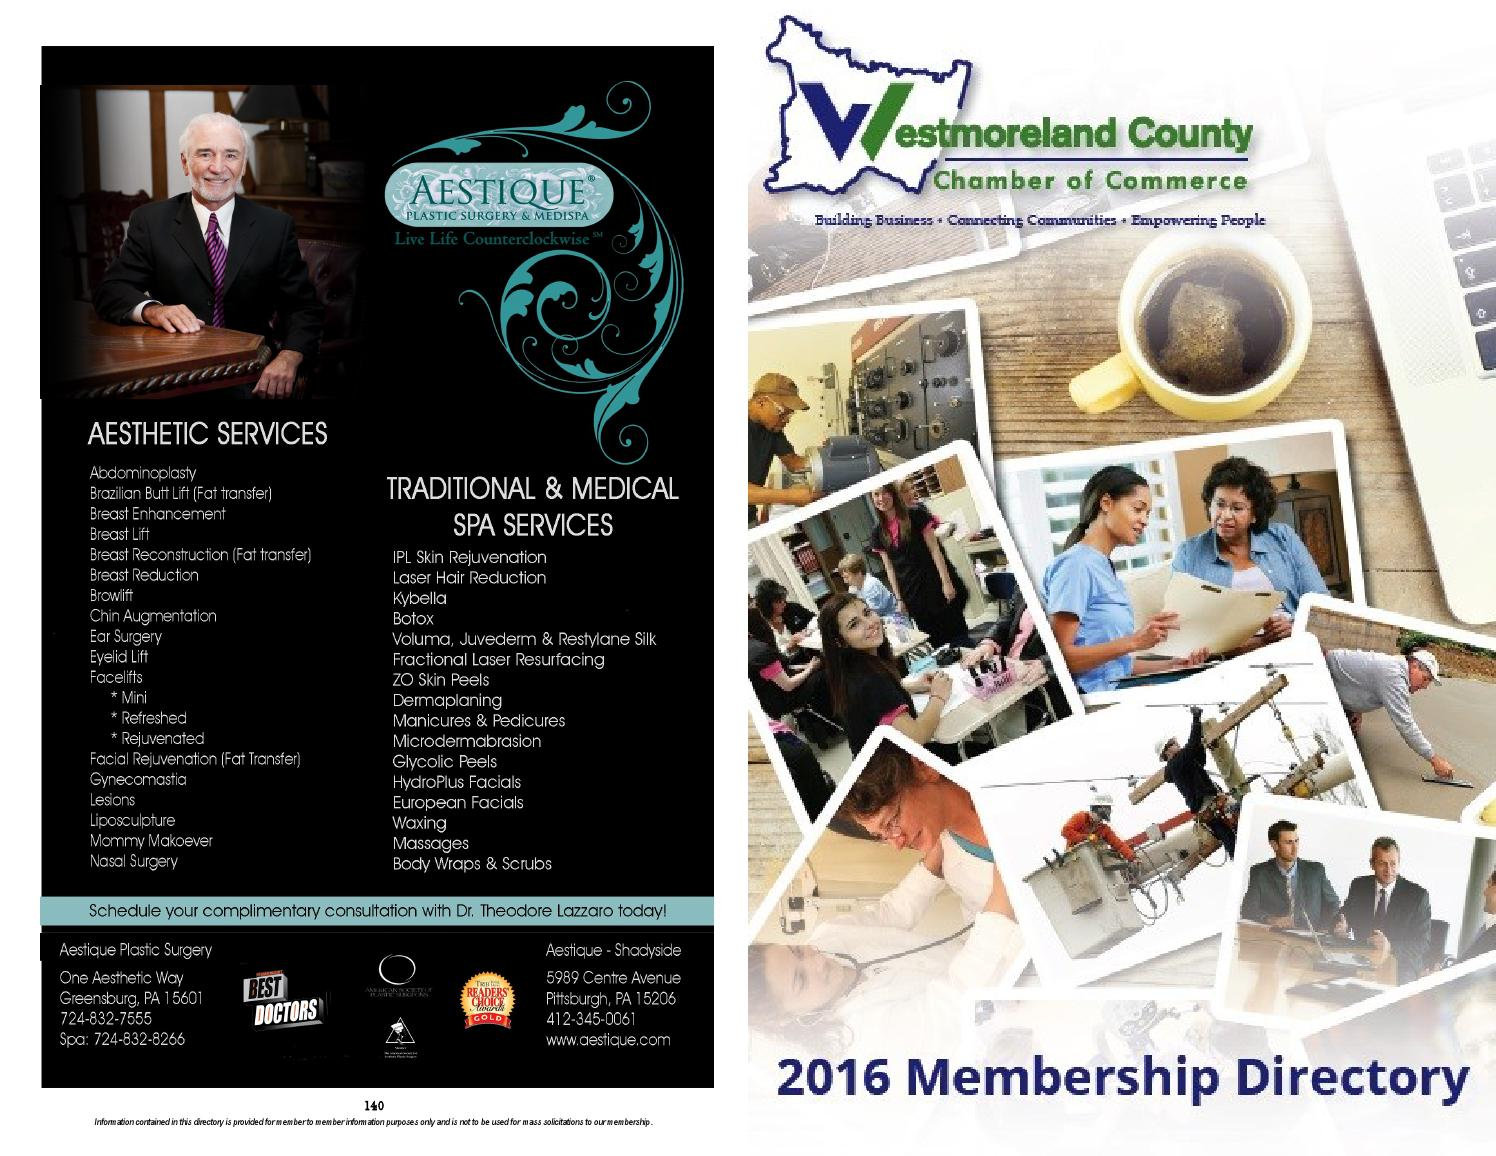 Membership Directory 2016 By Westmoreland County Chamber Of Commerce Issuu